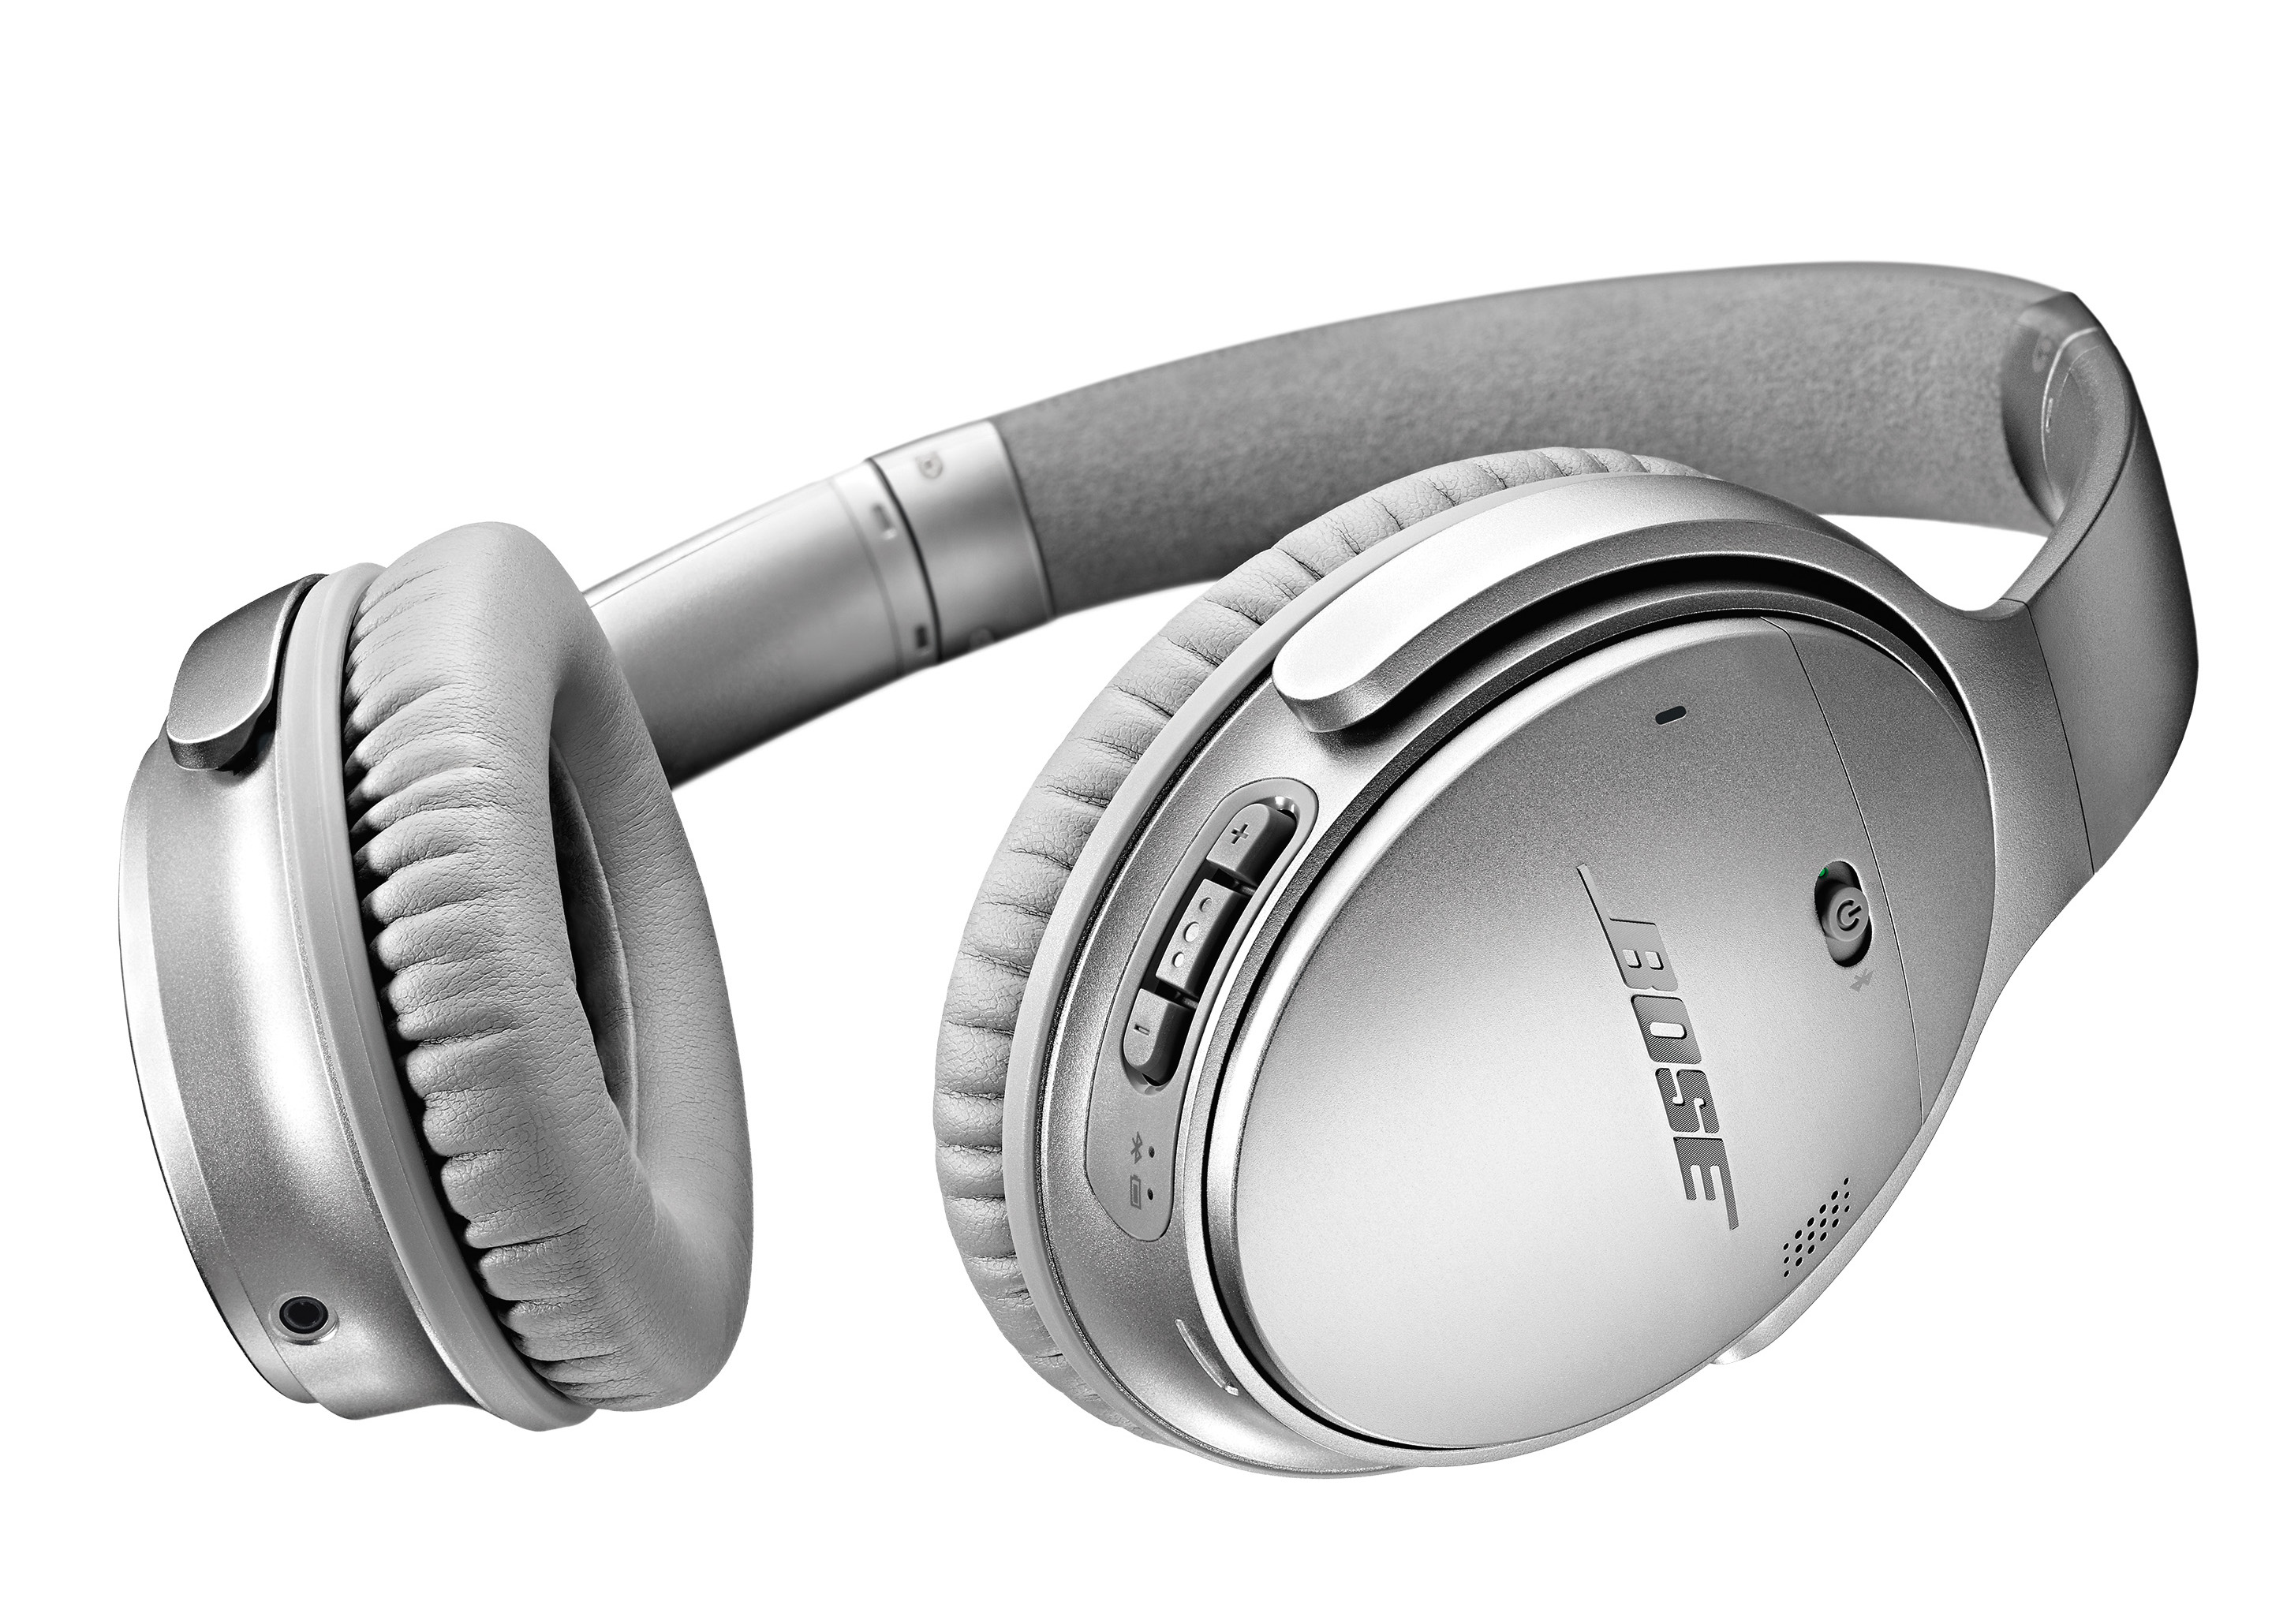 Bose Headphones Secretly Collected User Data Lawsuit Fortune